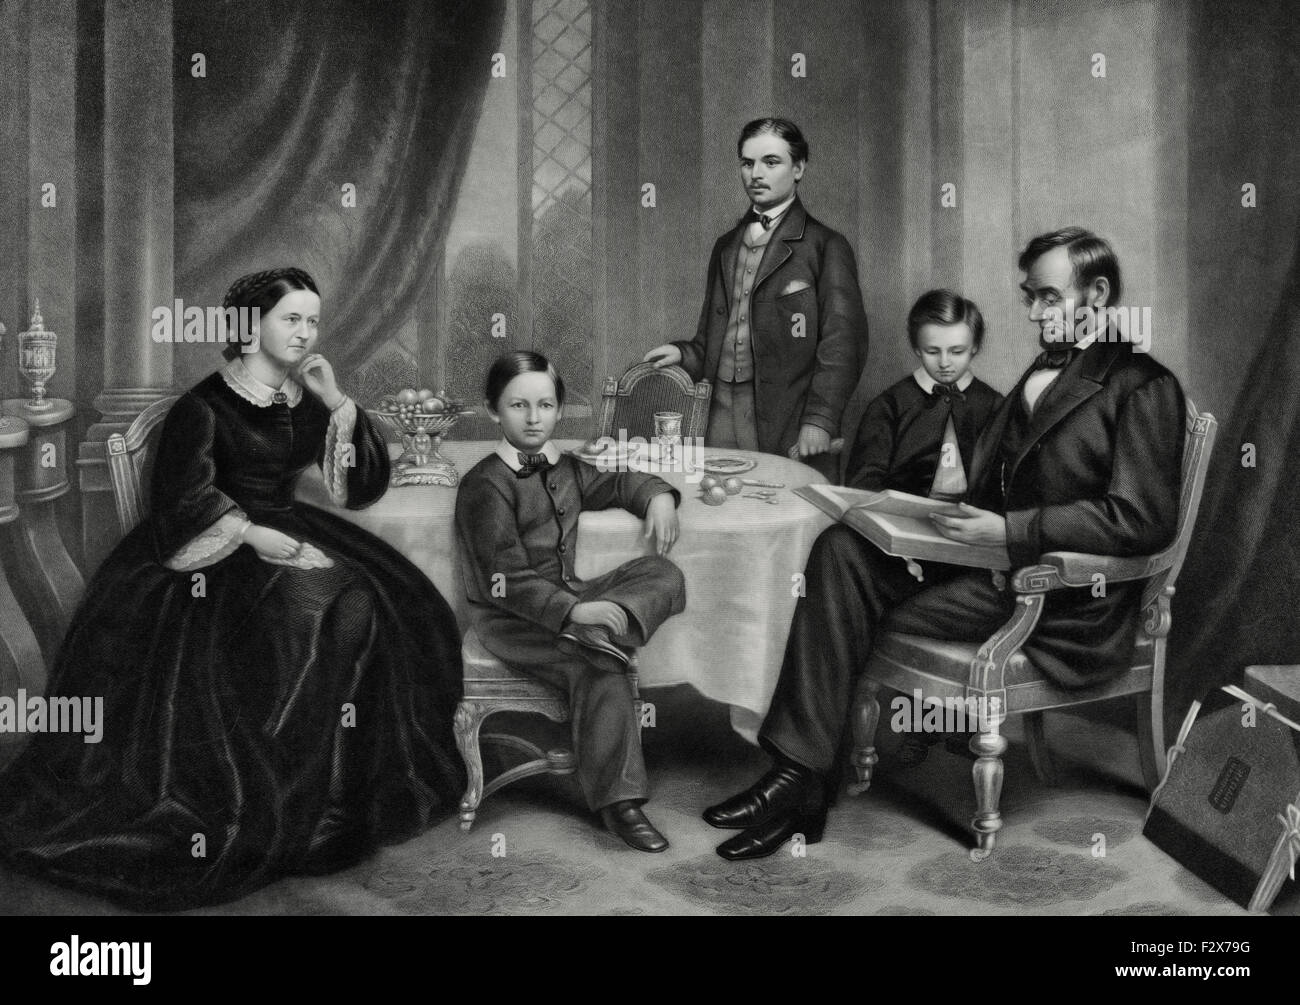 Abraham Lincoln and his family in 1861 - Stock Image